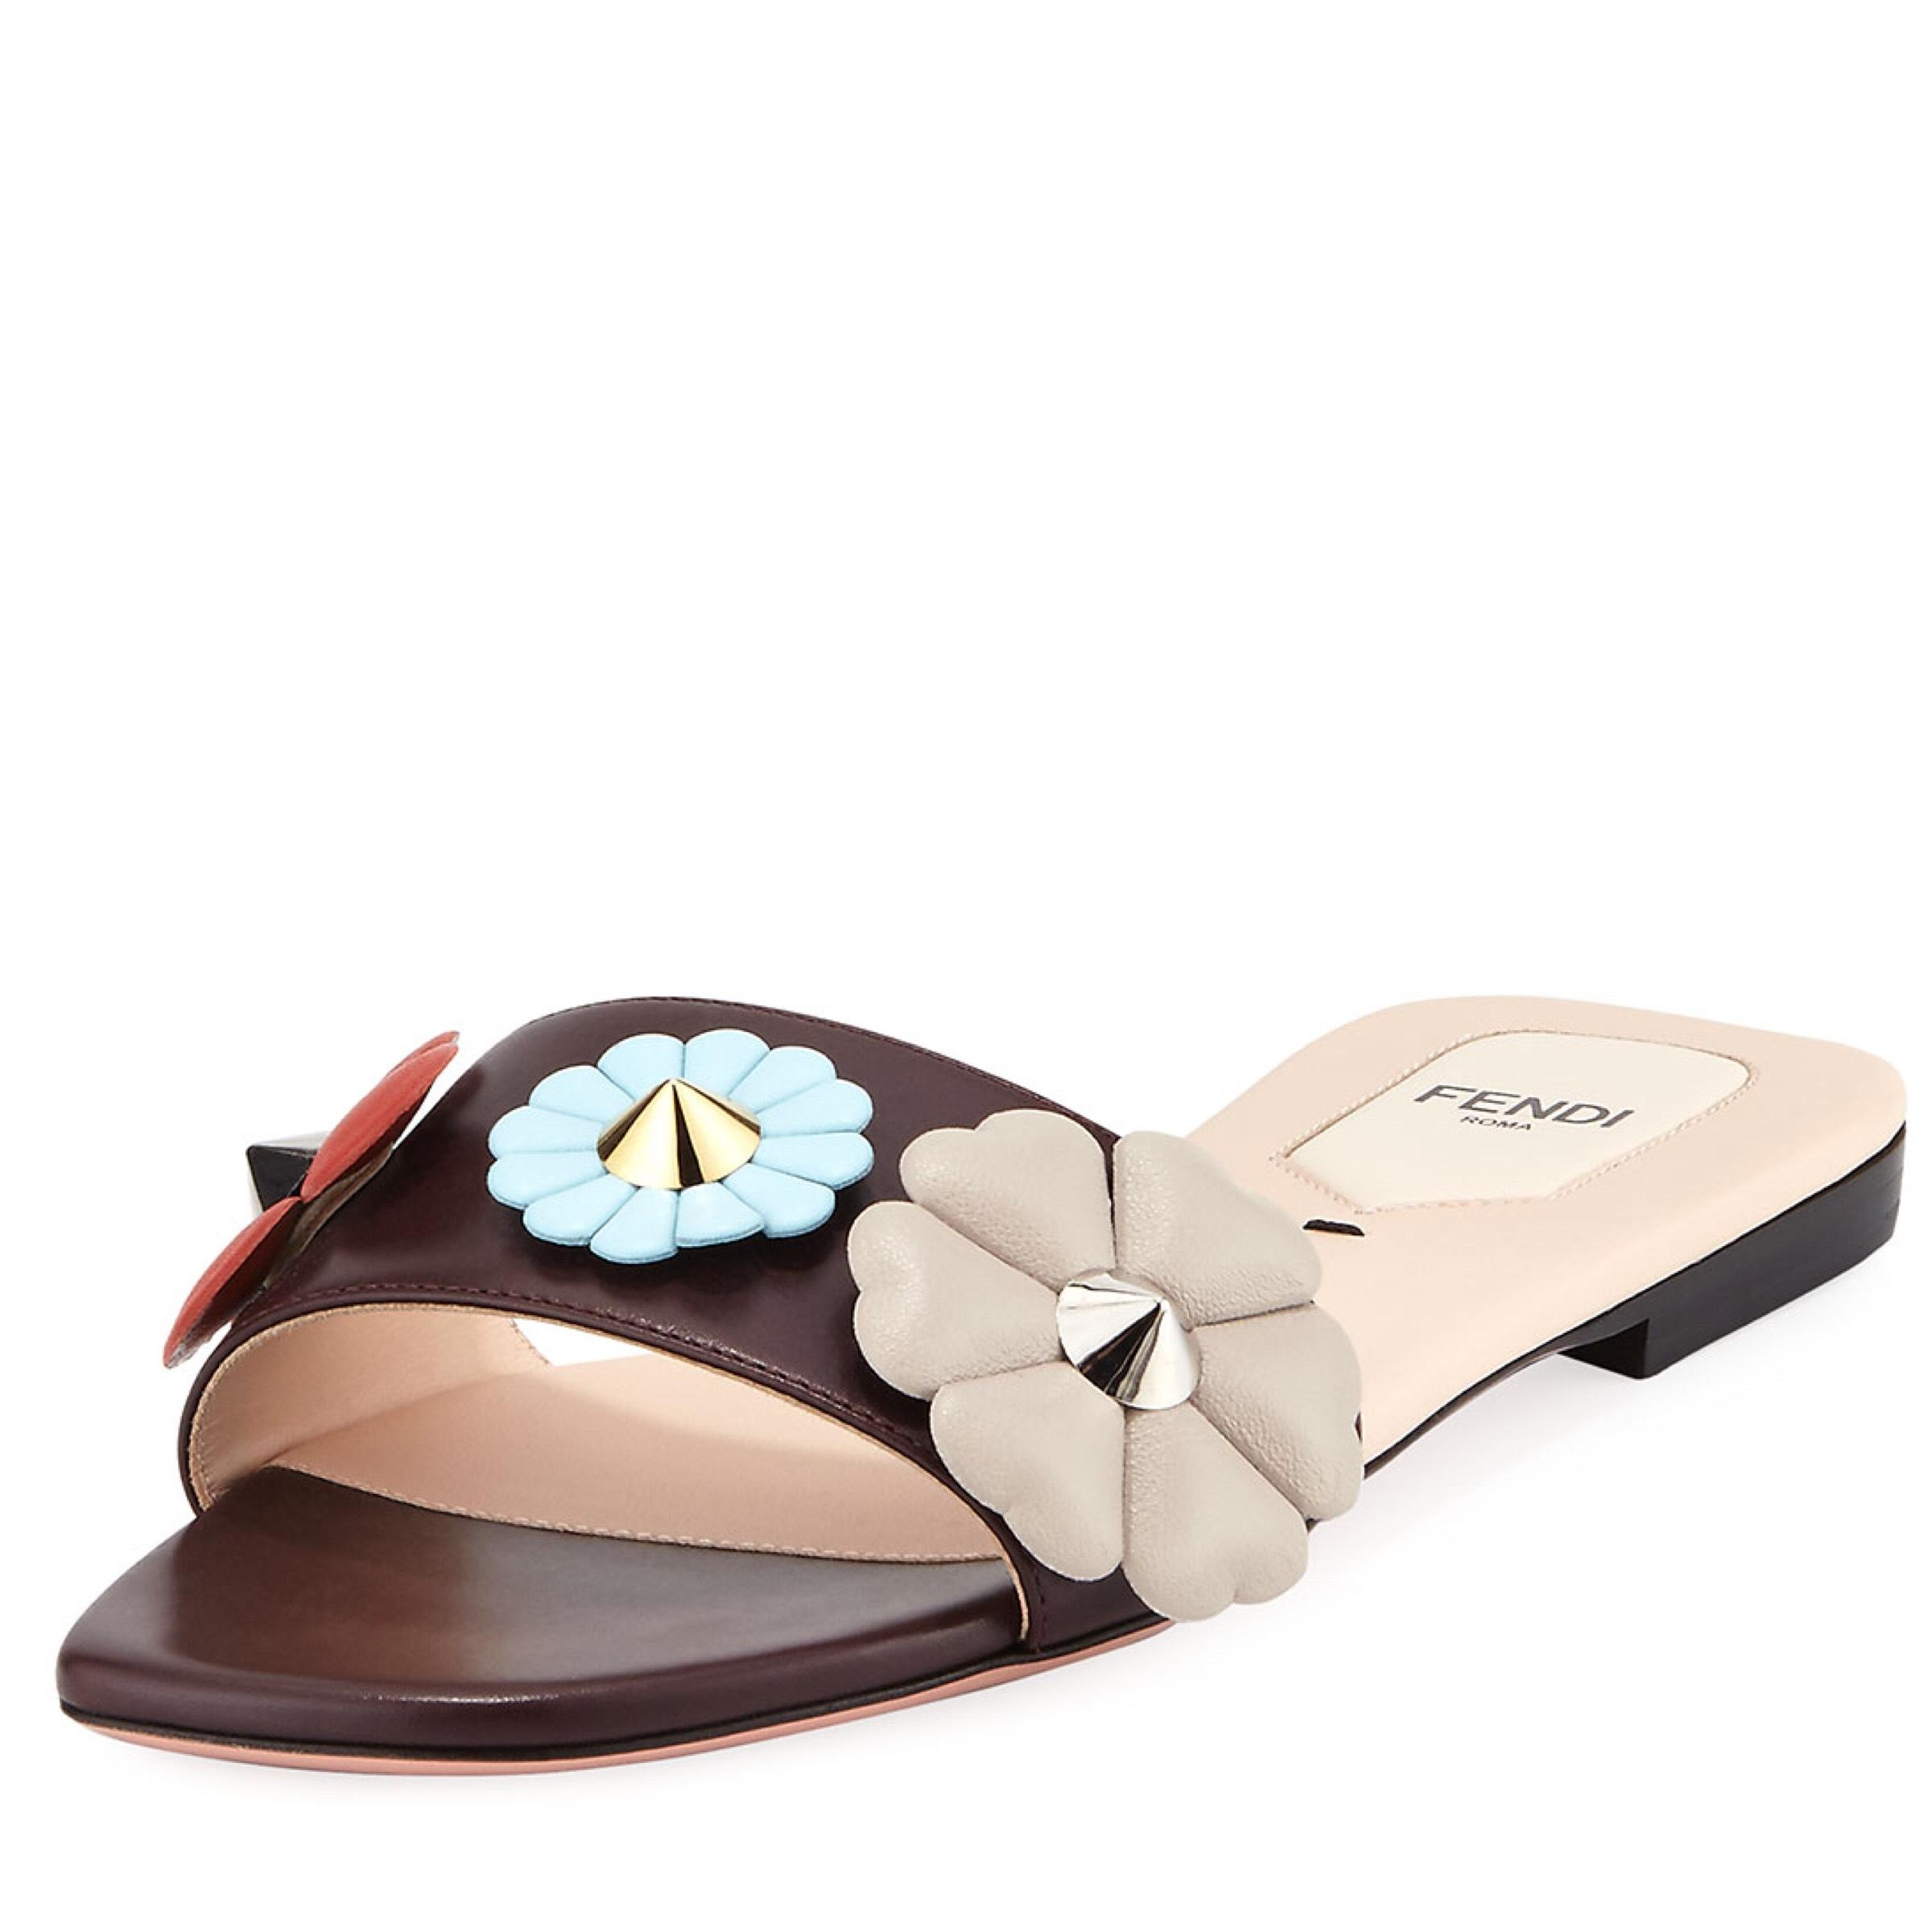 really cheap Fendi Floral Appliqué Slide Sandals for sale top quality free shipping browse wide range of cheap price free shipping manchester great sale eckwcH5T